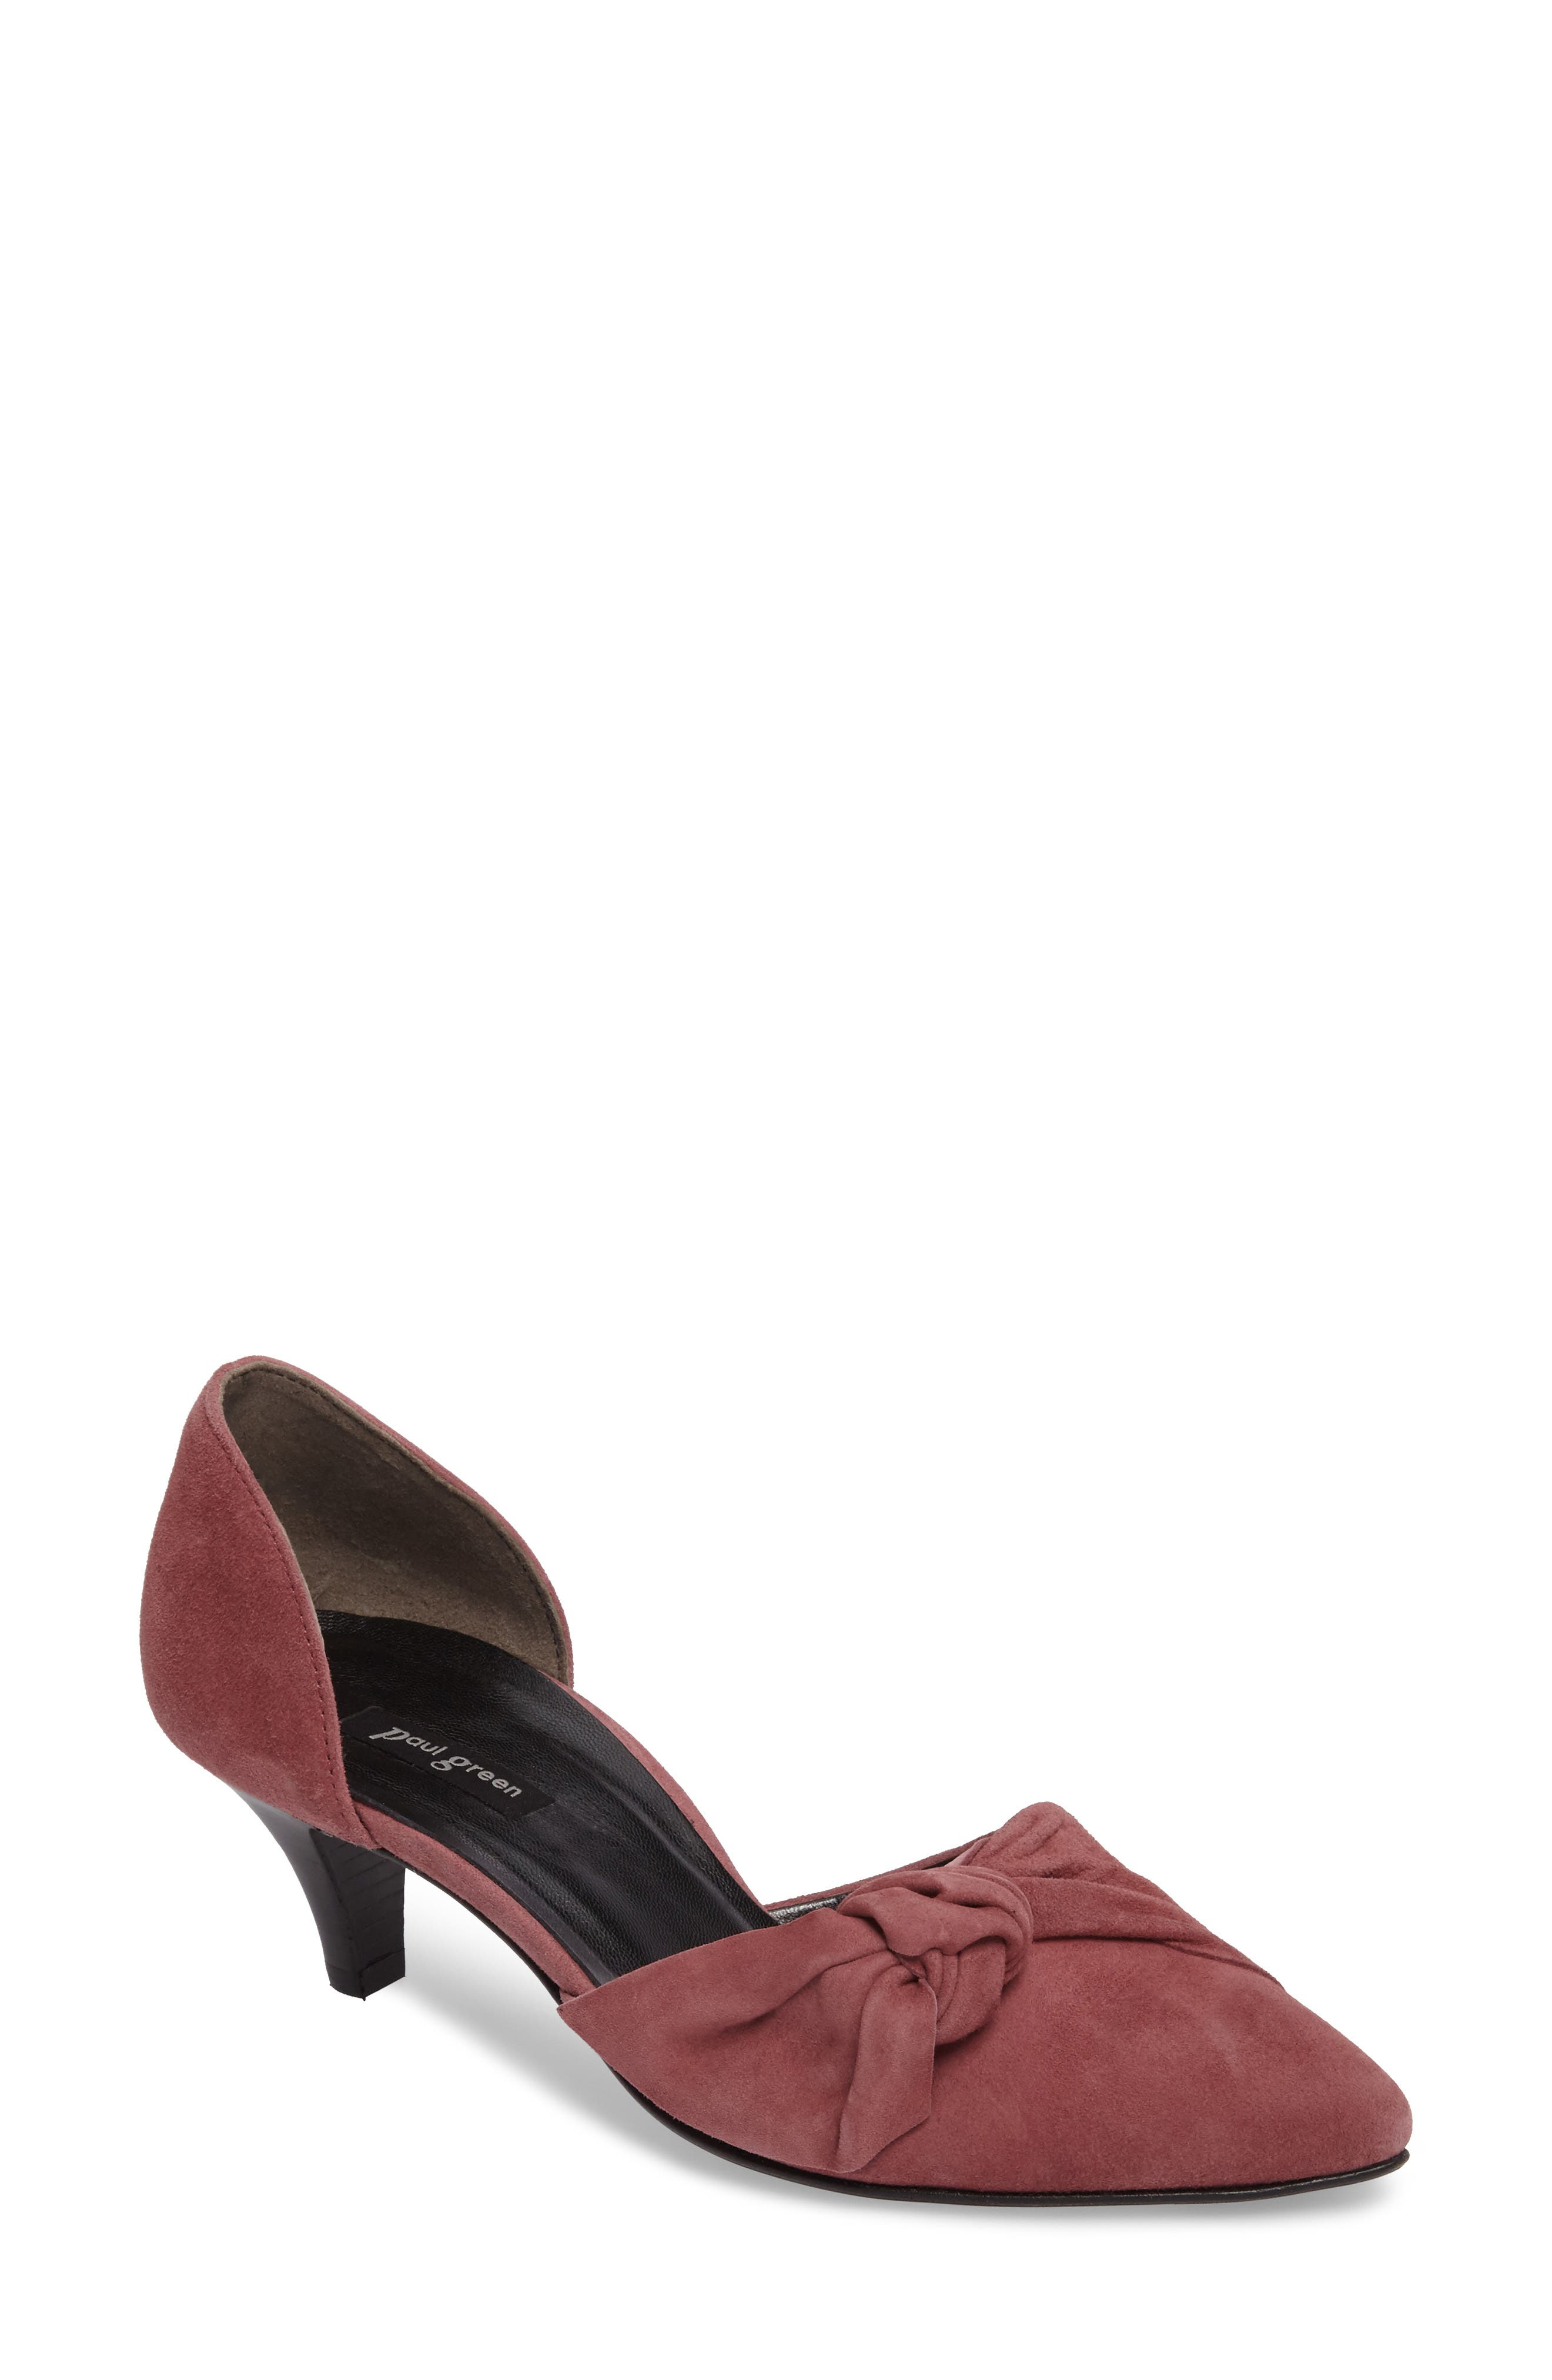 Nuriah d'Orsay Pump,                             Main thumbnail 1, color,                             Old Rose Suede